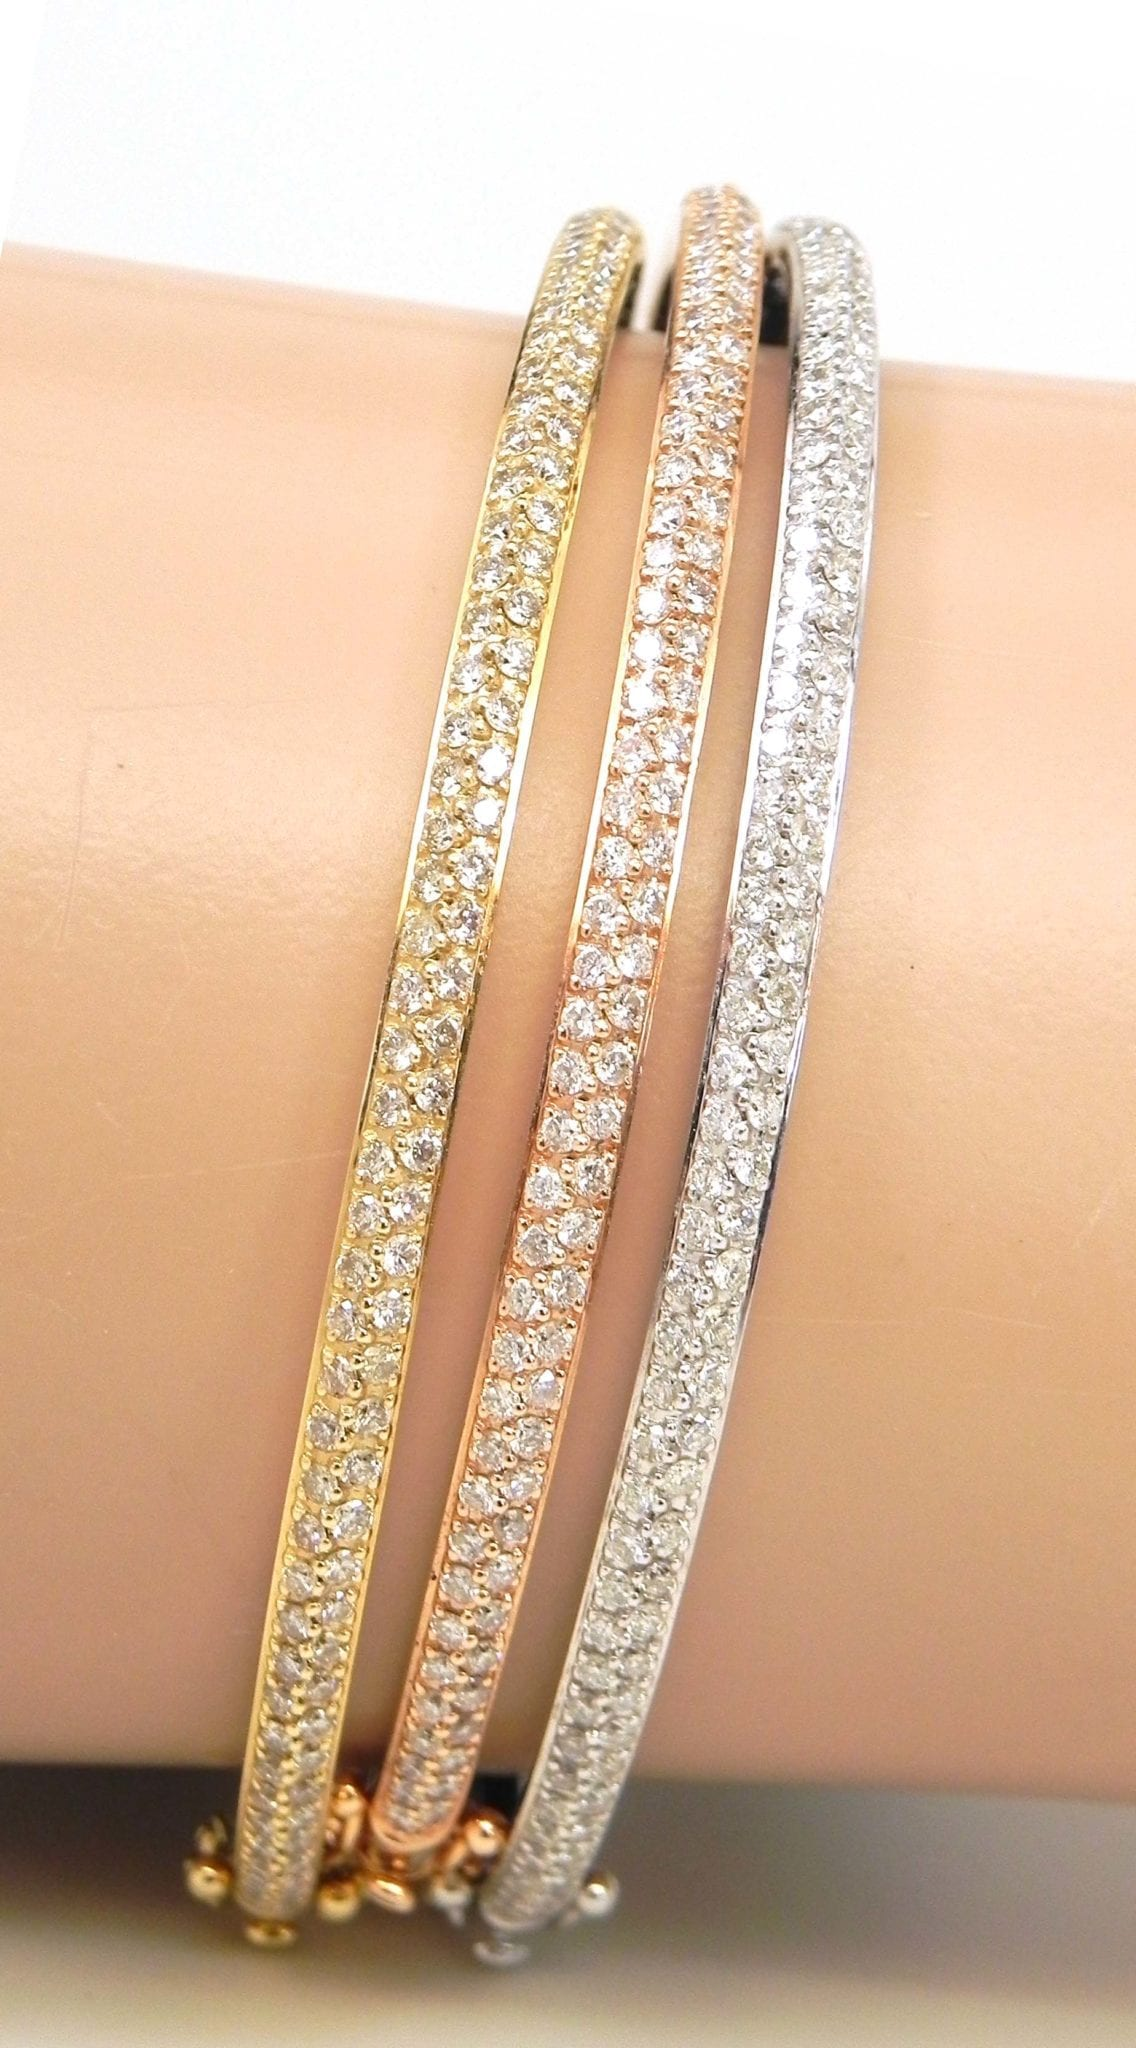 products diamond set centered w img in bangle floral bangles ct gold frame cuff vjnj yellow